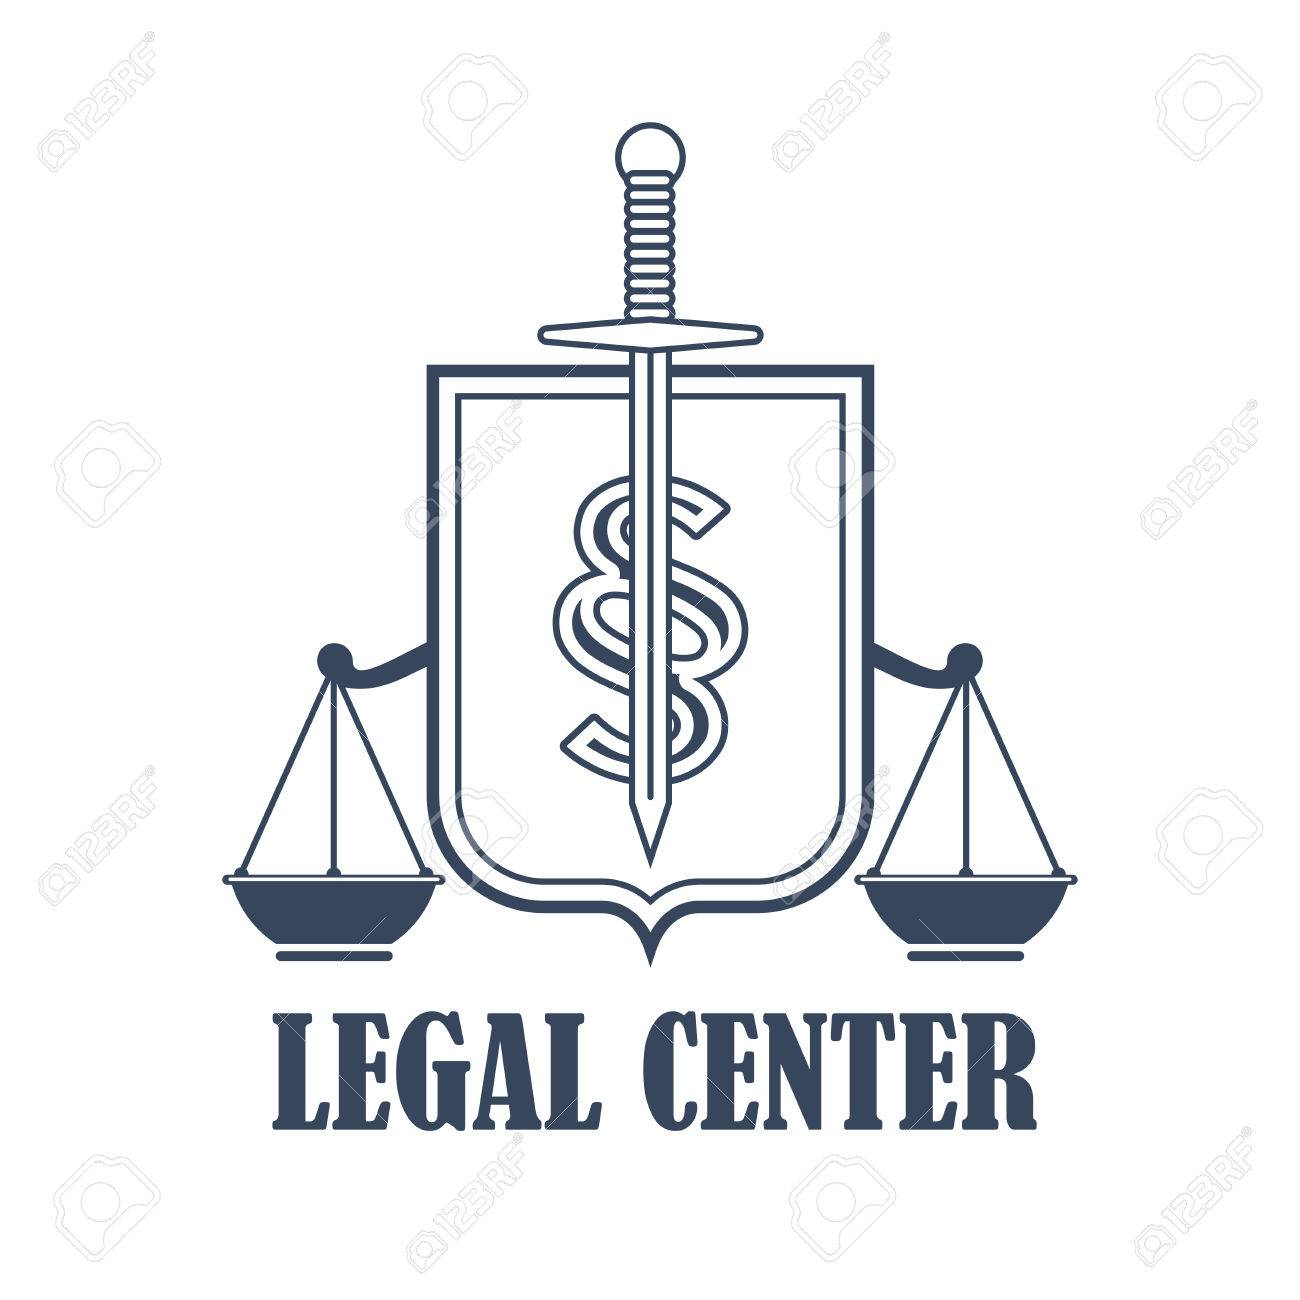 Advocacy Juridical Icon Or Legal Center Emblem For Advocate Or